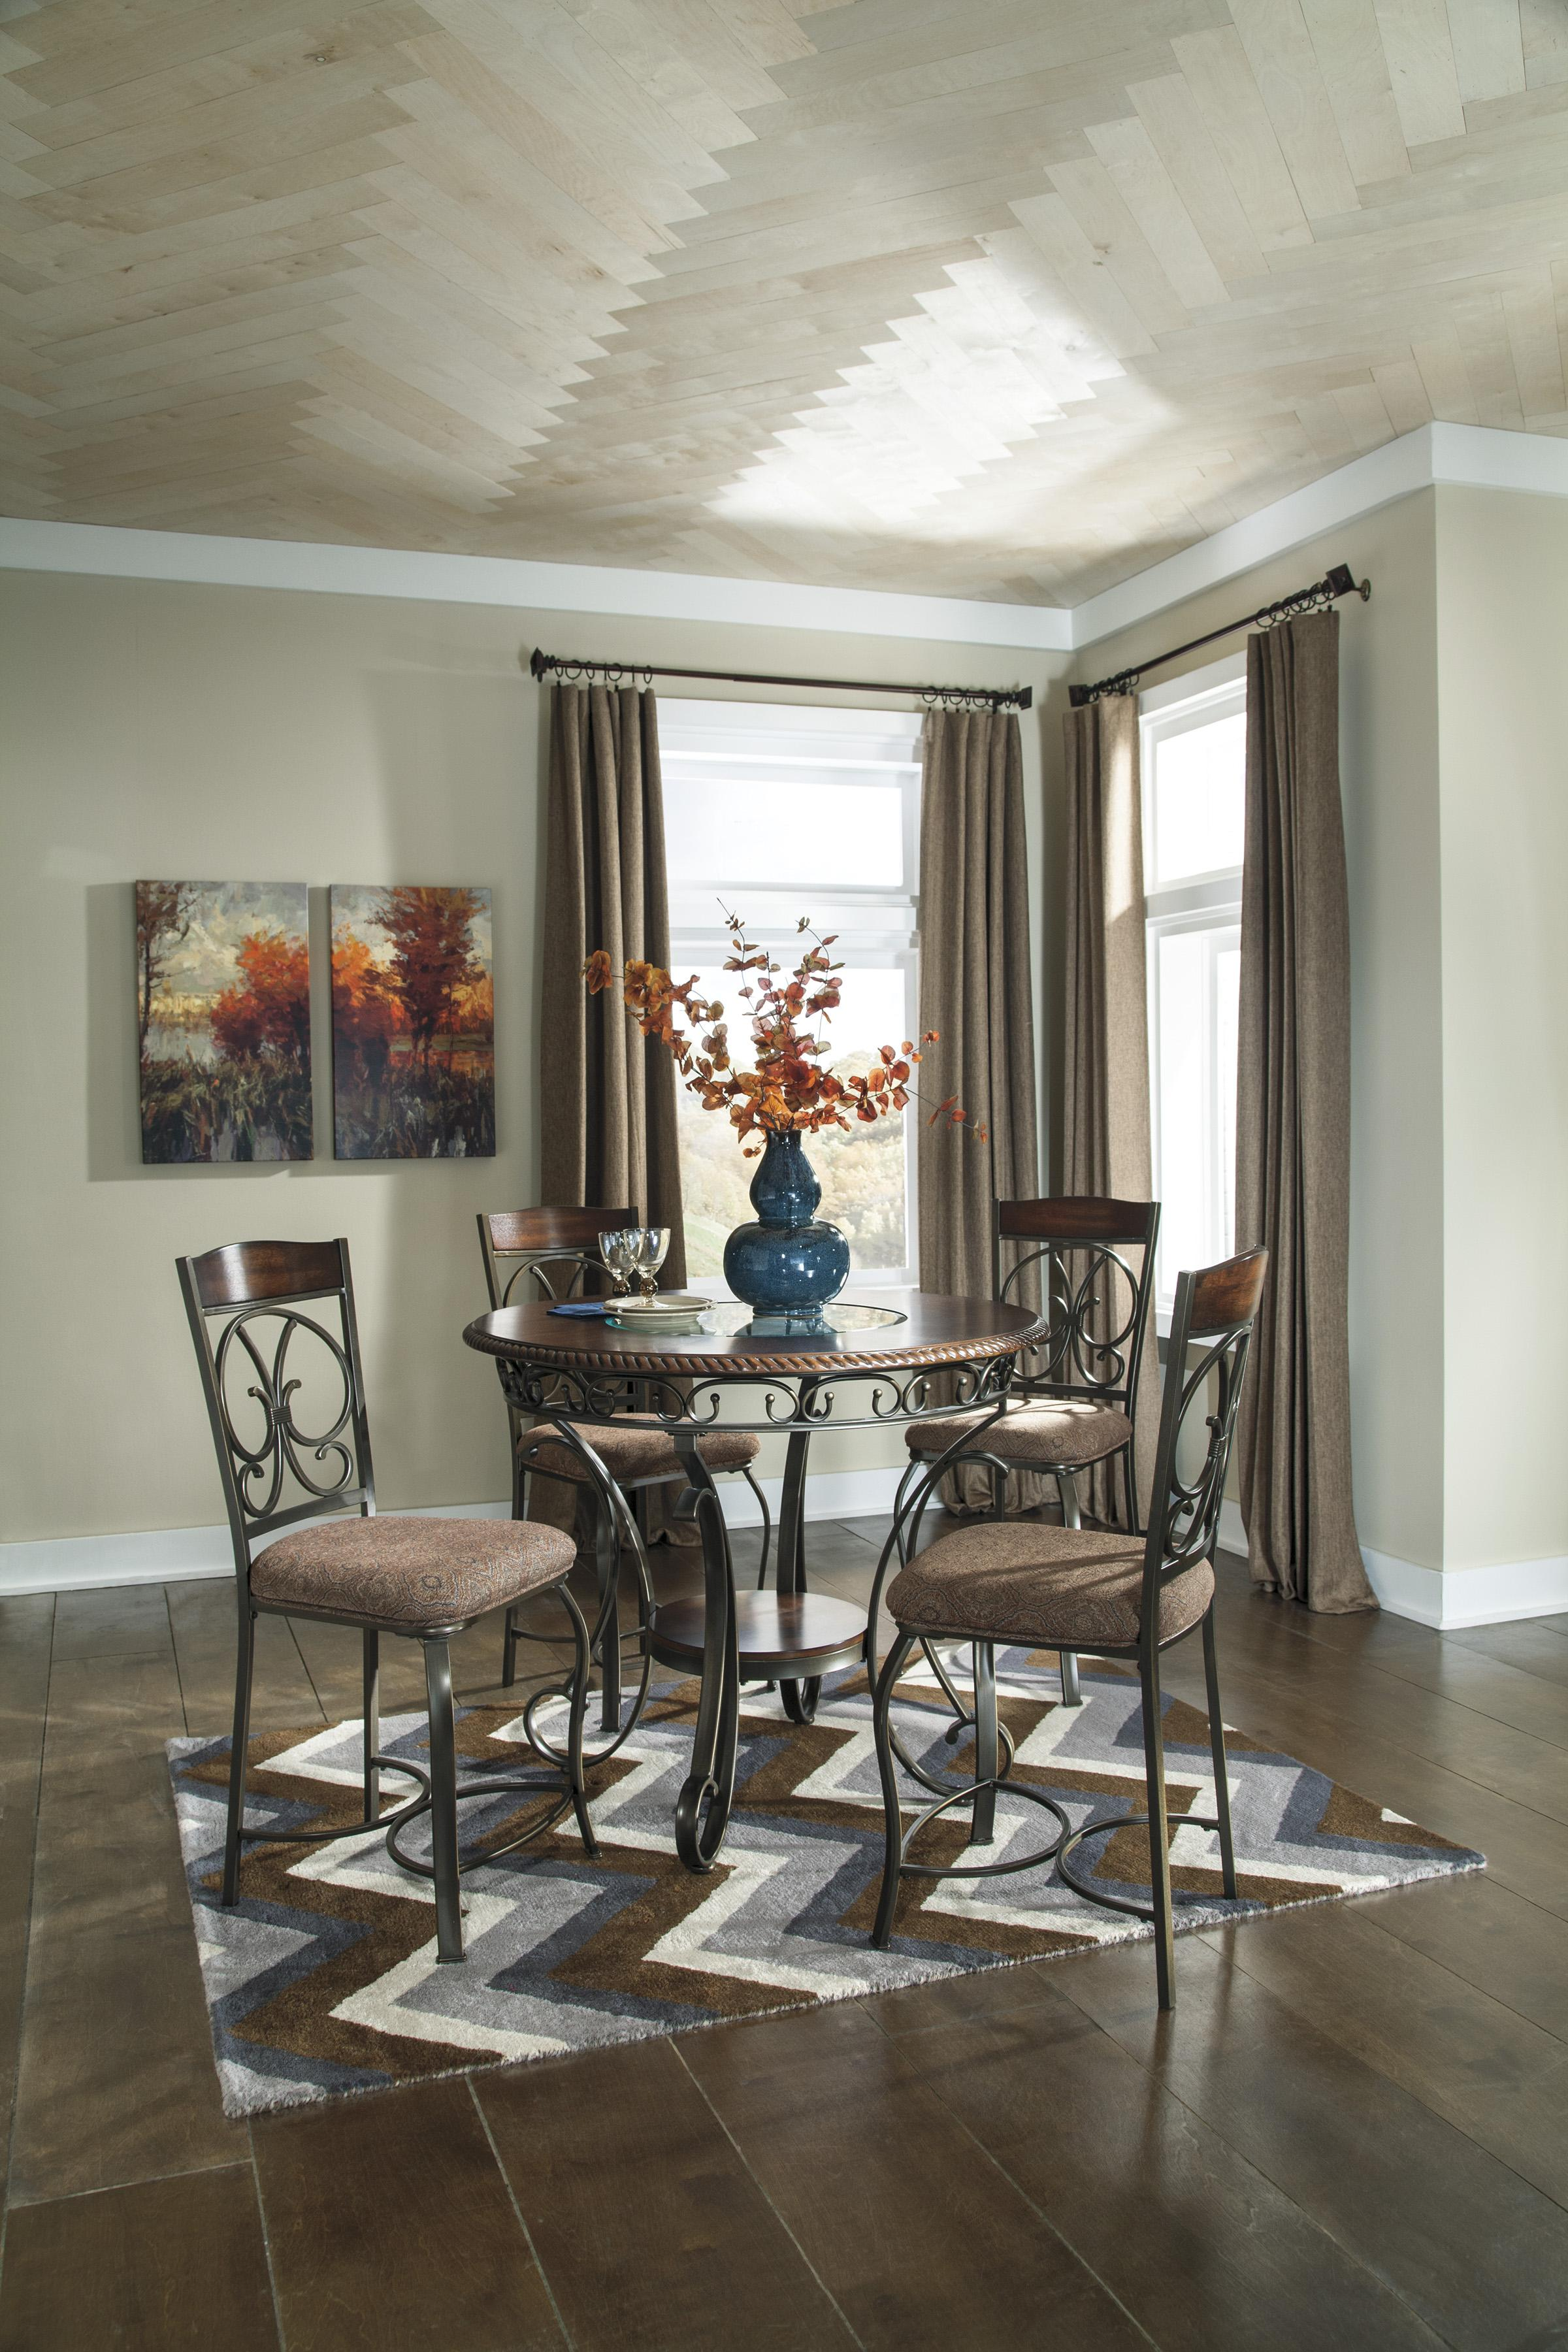 Ashley Furniture Kitchen Table Sets Signature Design By Ashley Furniture Glambrey Round Dining Table